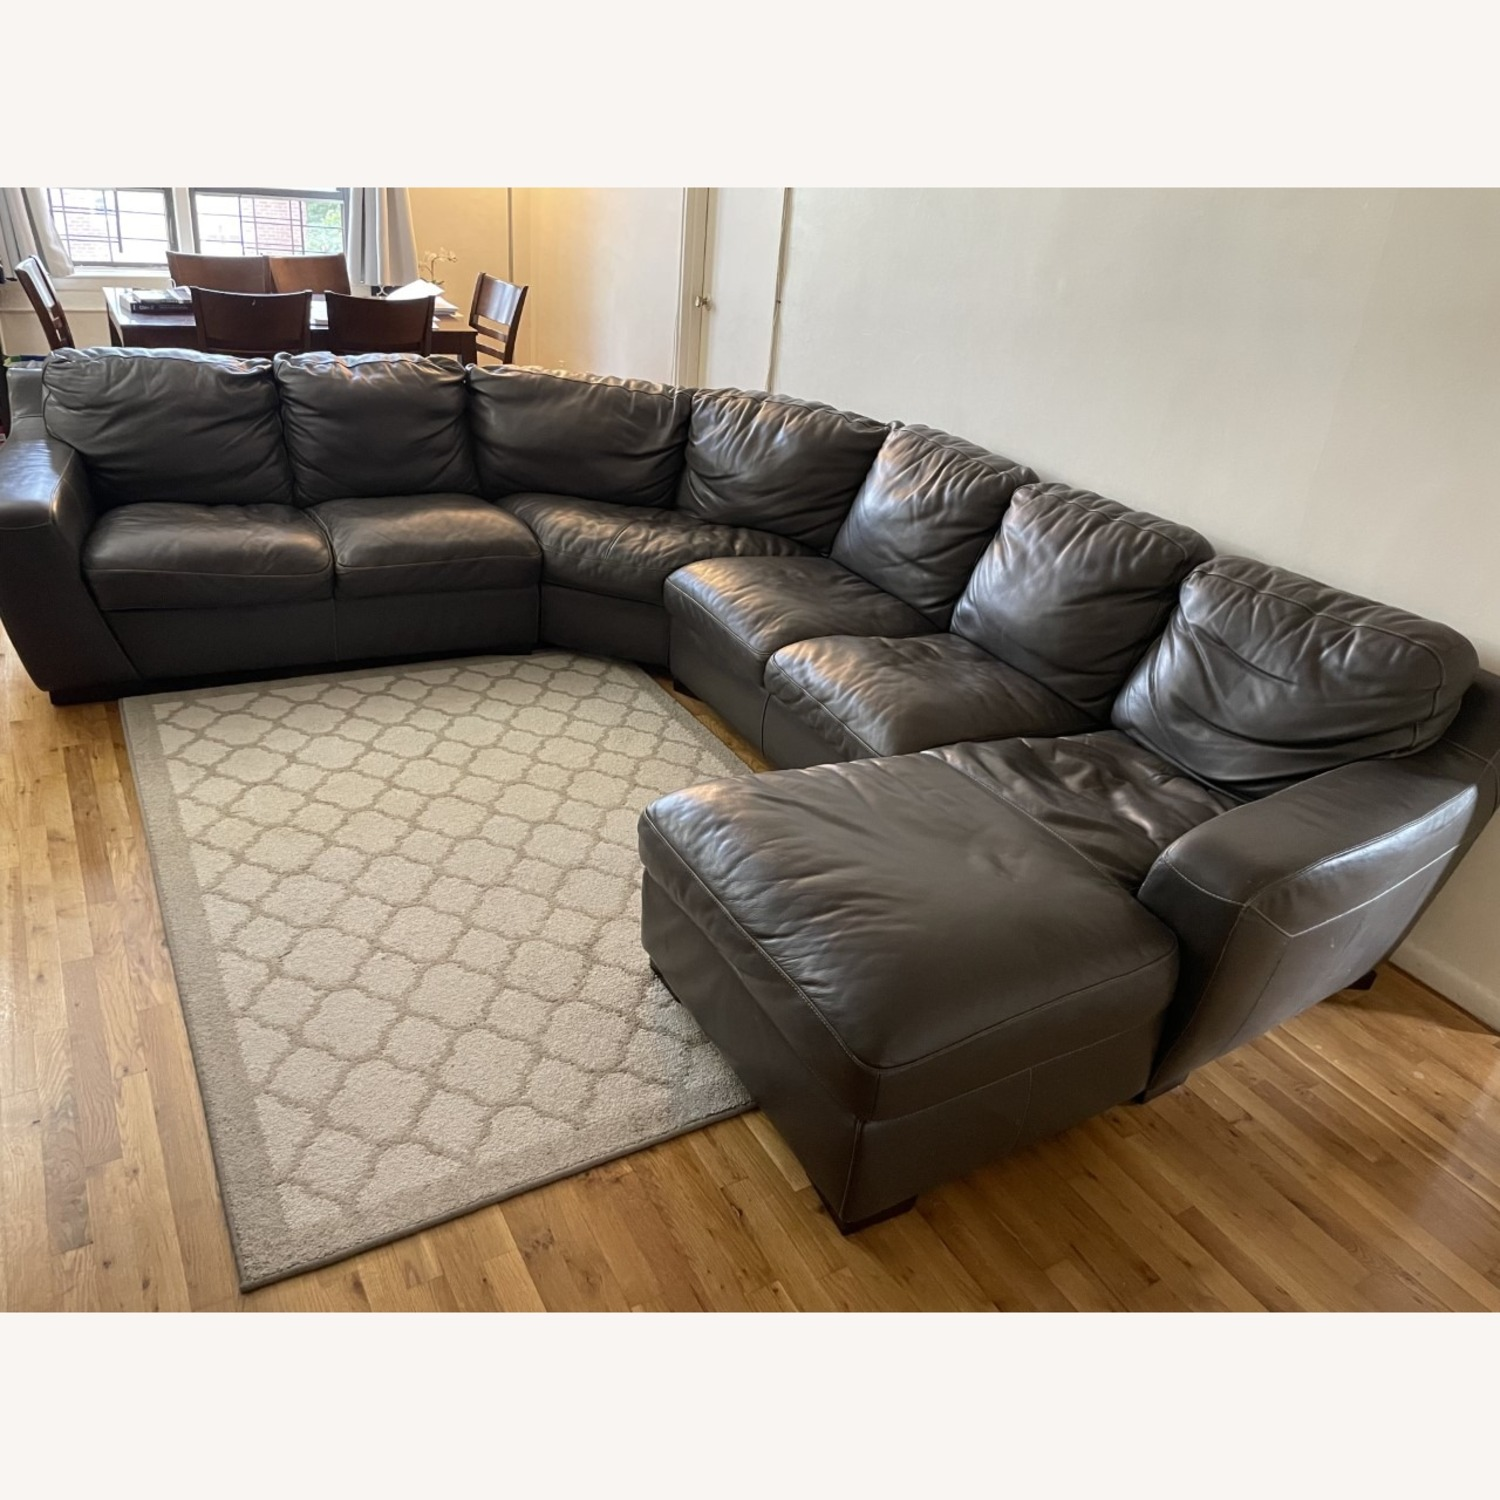 Raymour and Flanigan Leather Sectional Sofa - image-2